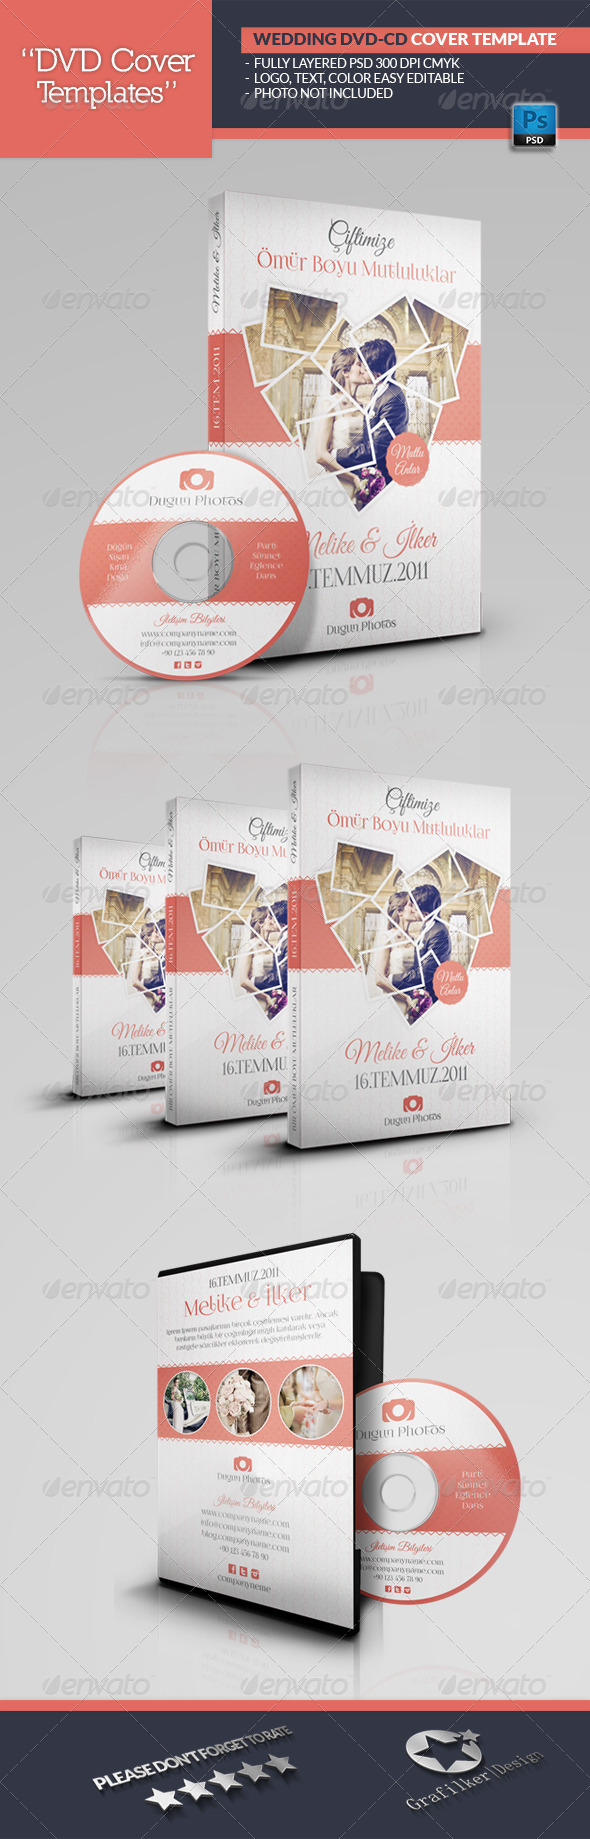 GraphicRiver Wedding Dvd Cover Templates 6787032